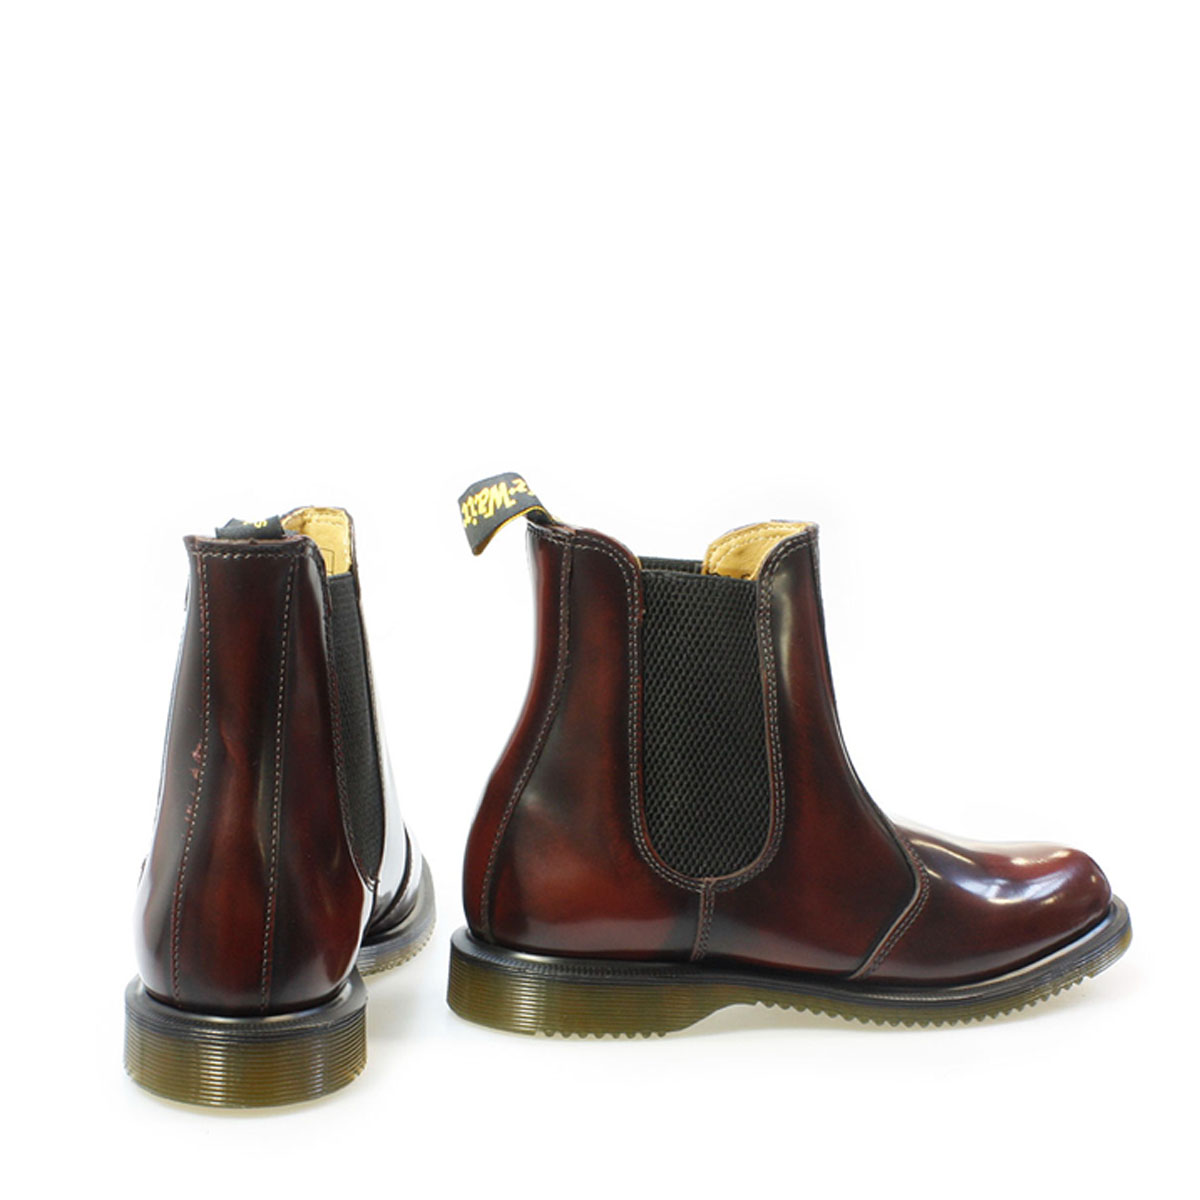 dr martens flora womens ankle boots burgundy brown classic leather pull on ebay. Black Bedroom Furniture Sets. Home Design Ideas